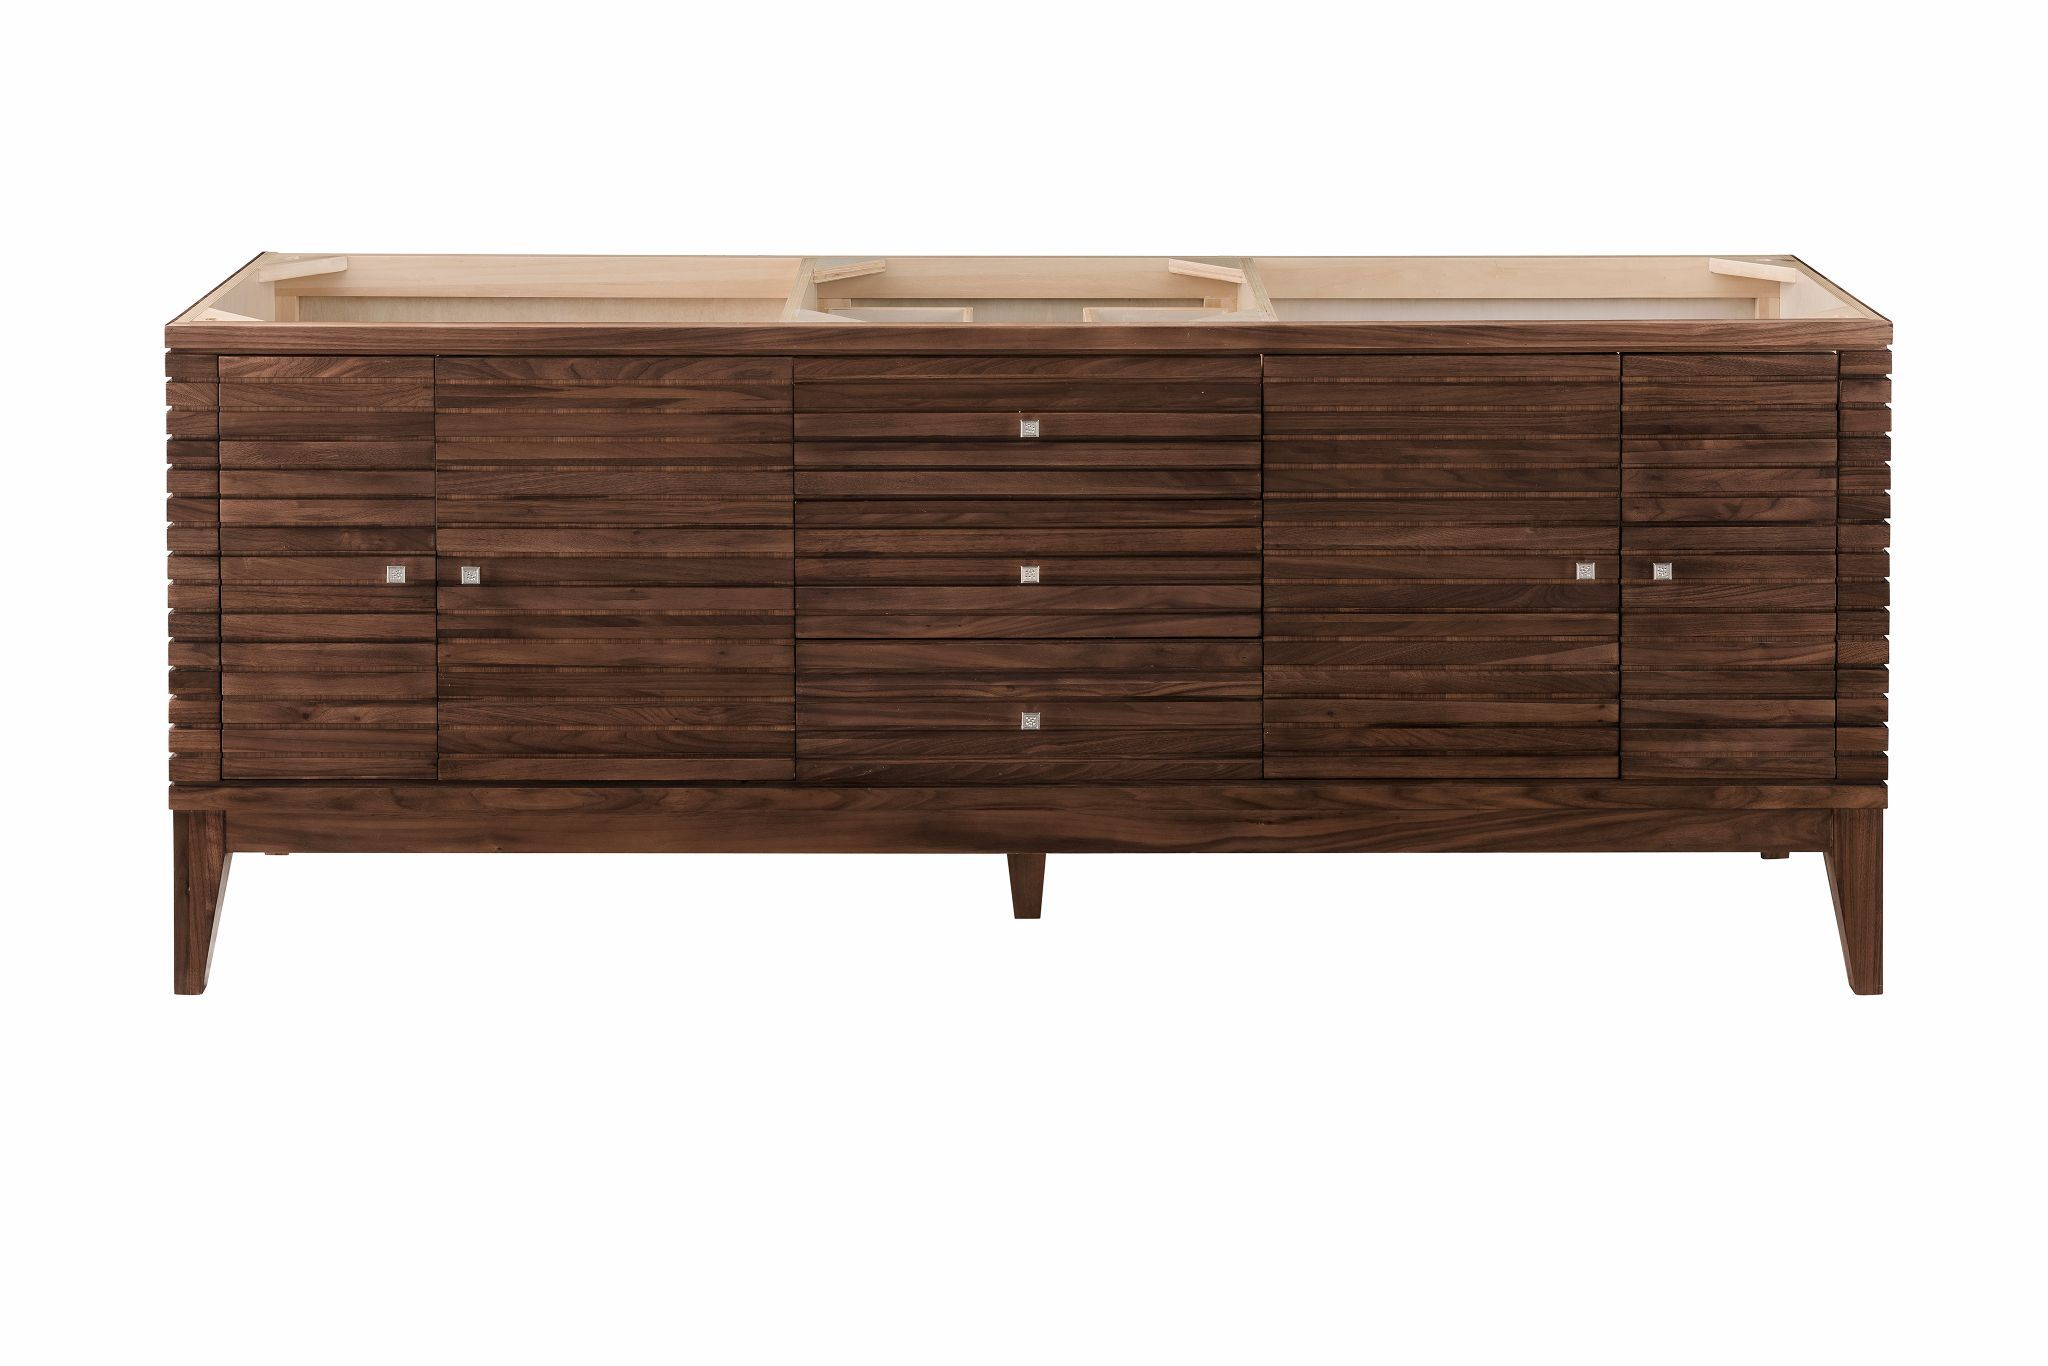 "Linear 72"" Single Bathroom Vanity, Mid Century Walnut Single Bathroom Vanity James Martin Vanities"